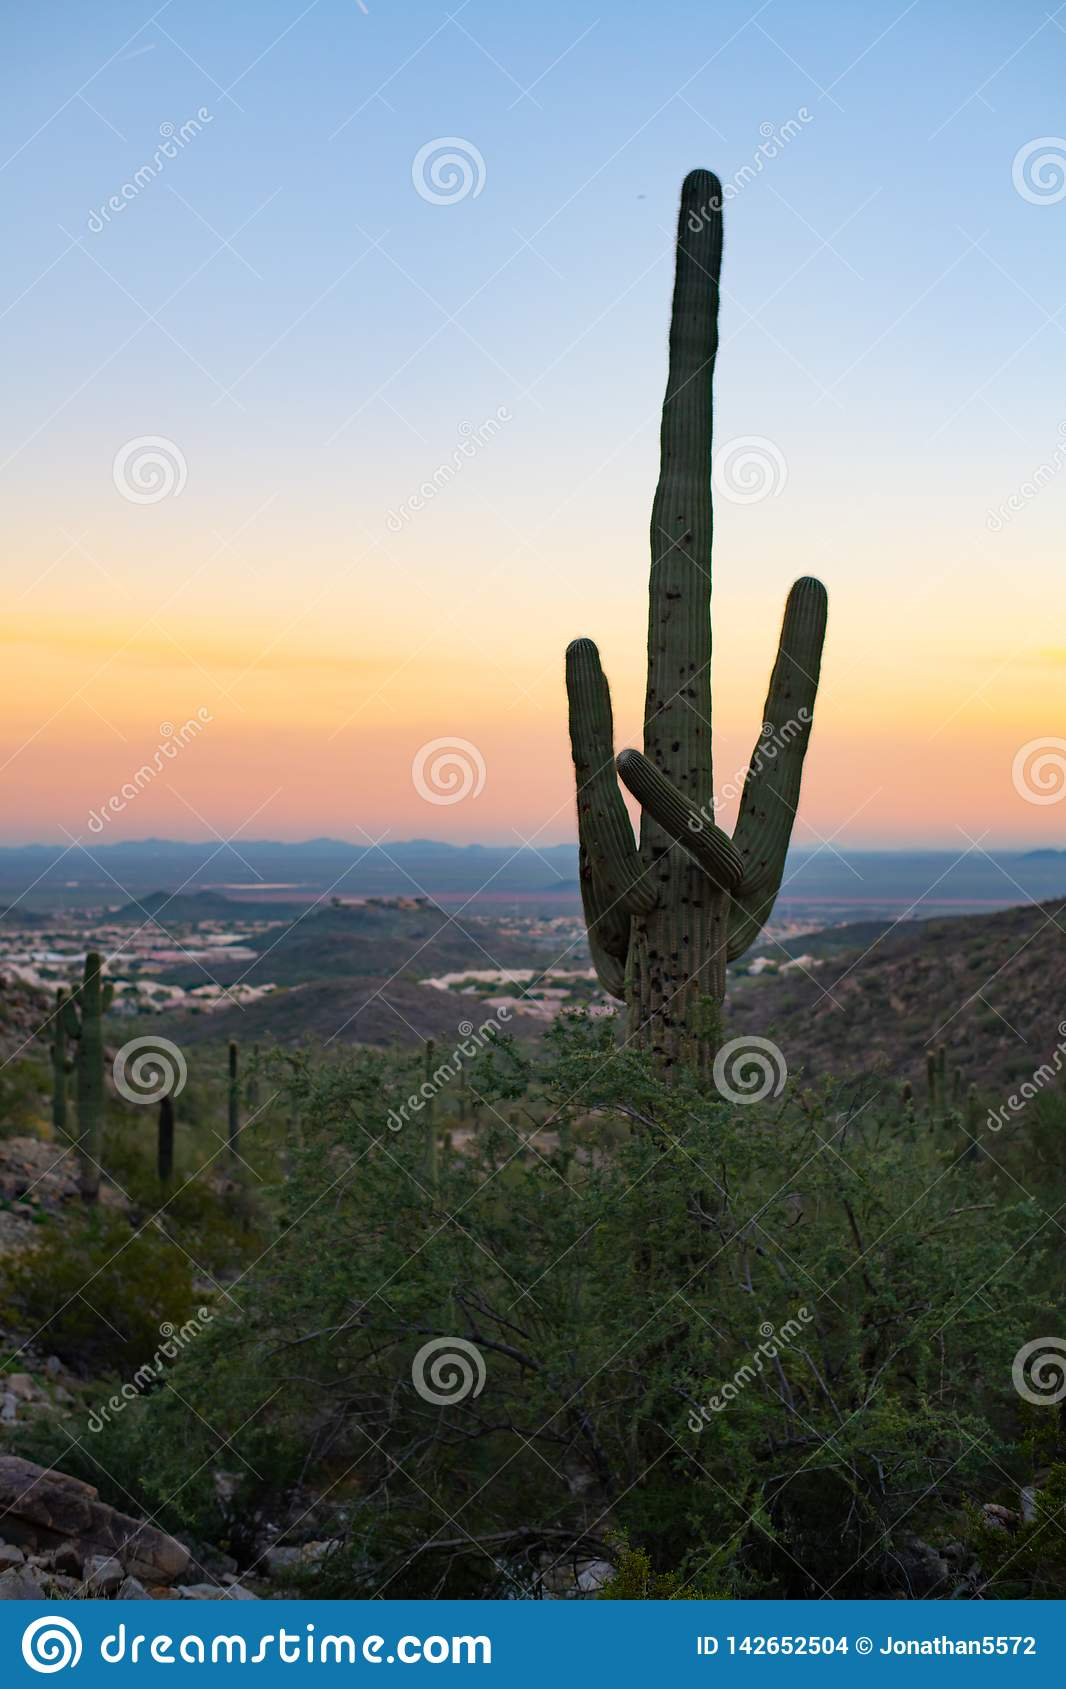 Saguaro Cactus Sunset Arizona